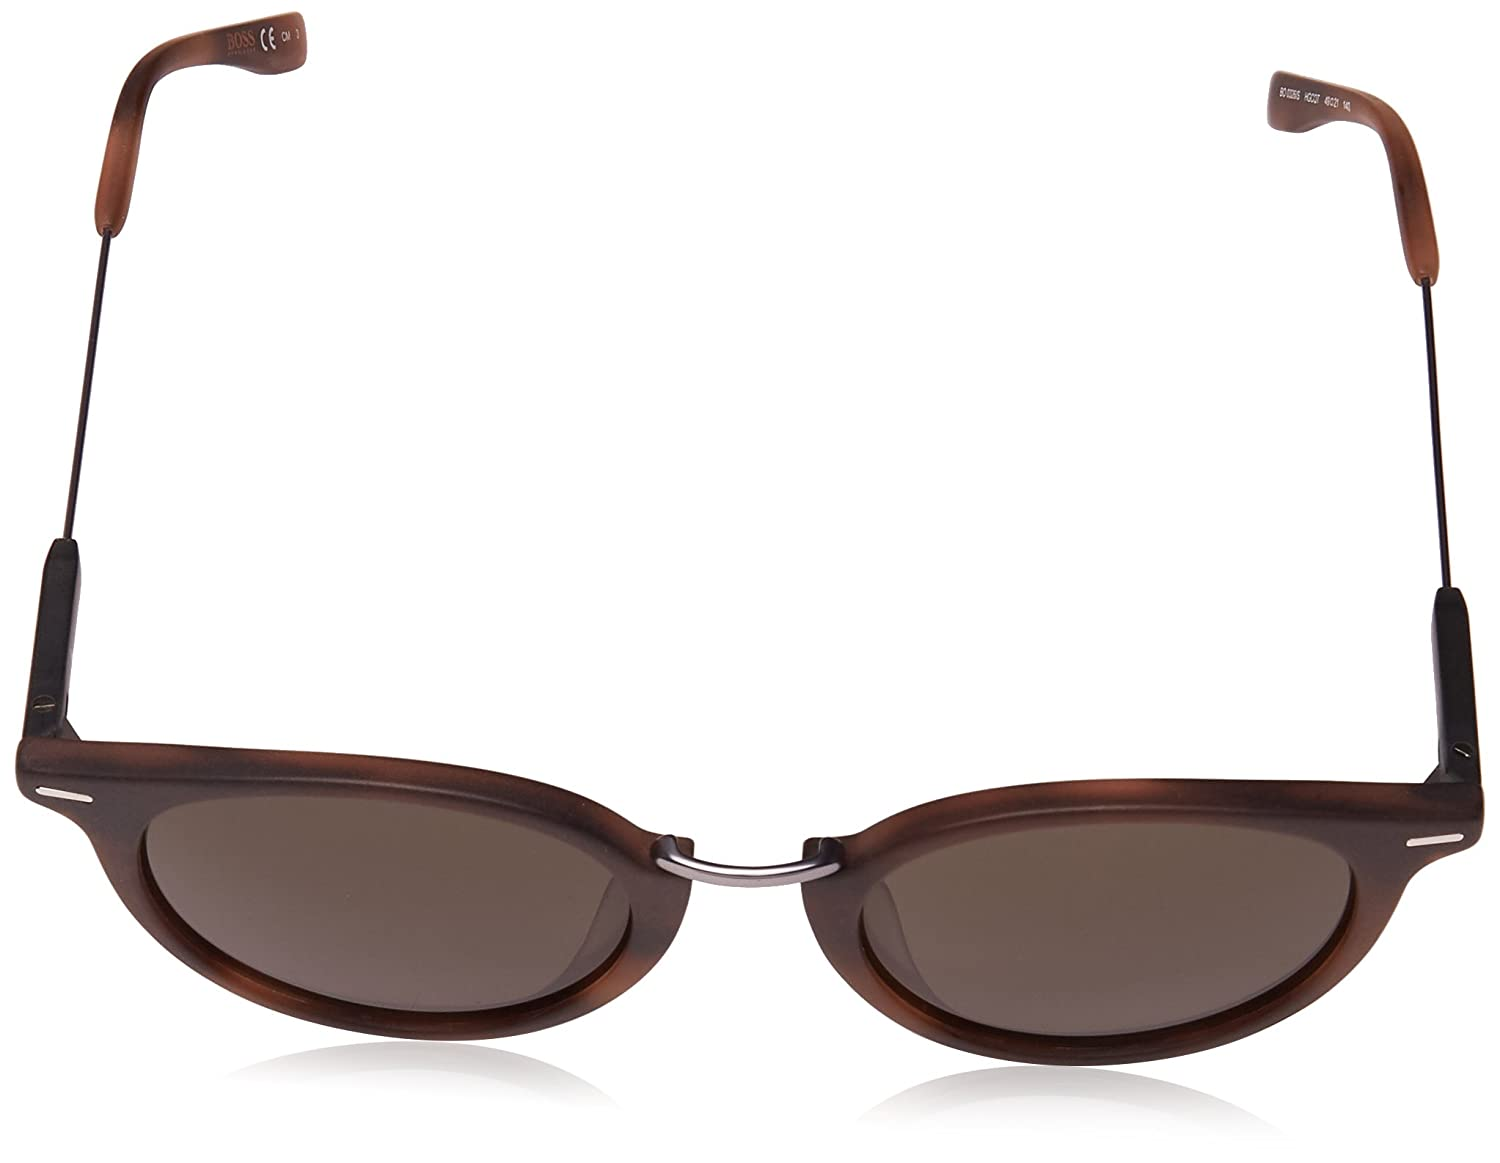 1639632ce18 Hugo Boss Orange Sunglasses Brown Havana BO0326.S.HGC.49QT (Diameter Lens  49  mm)  Amazon.co.uk  Clothing